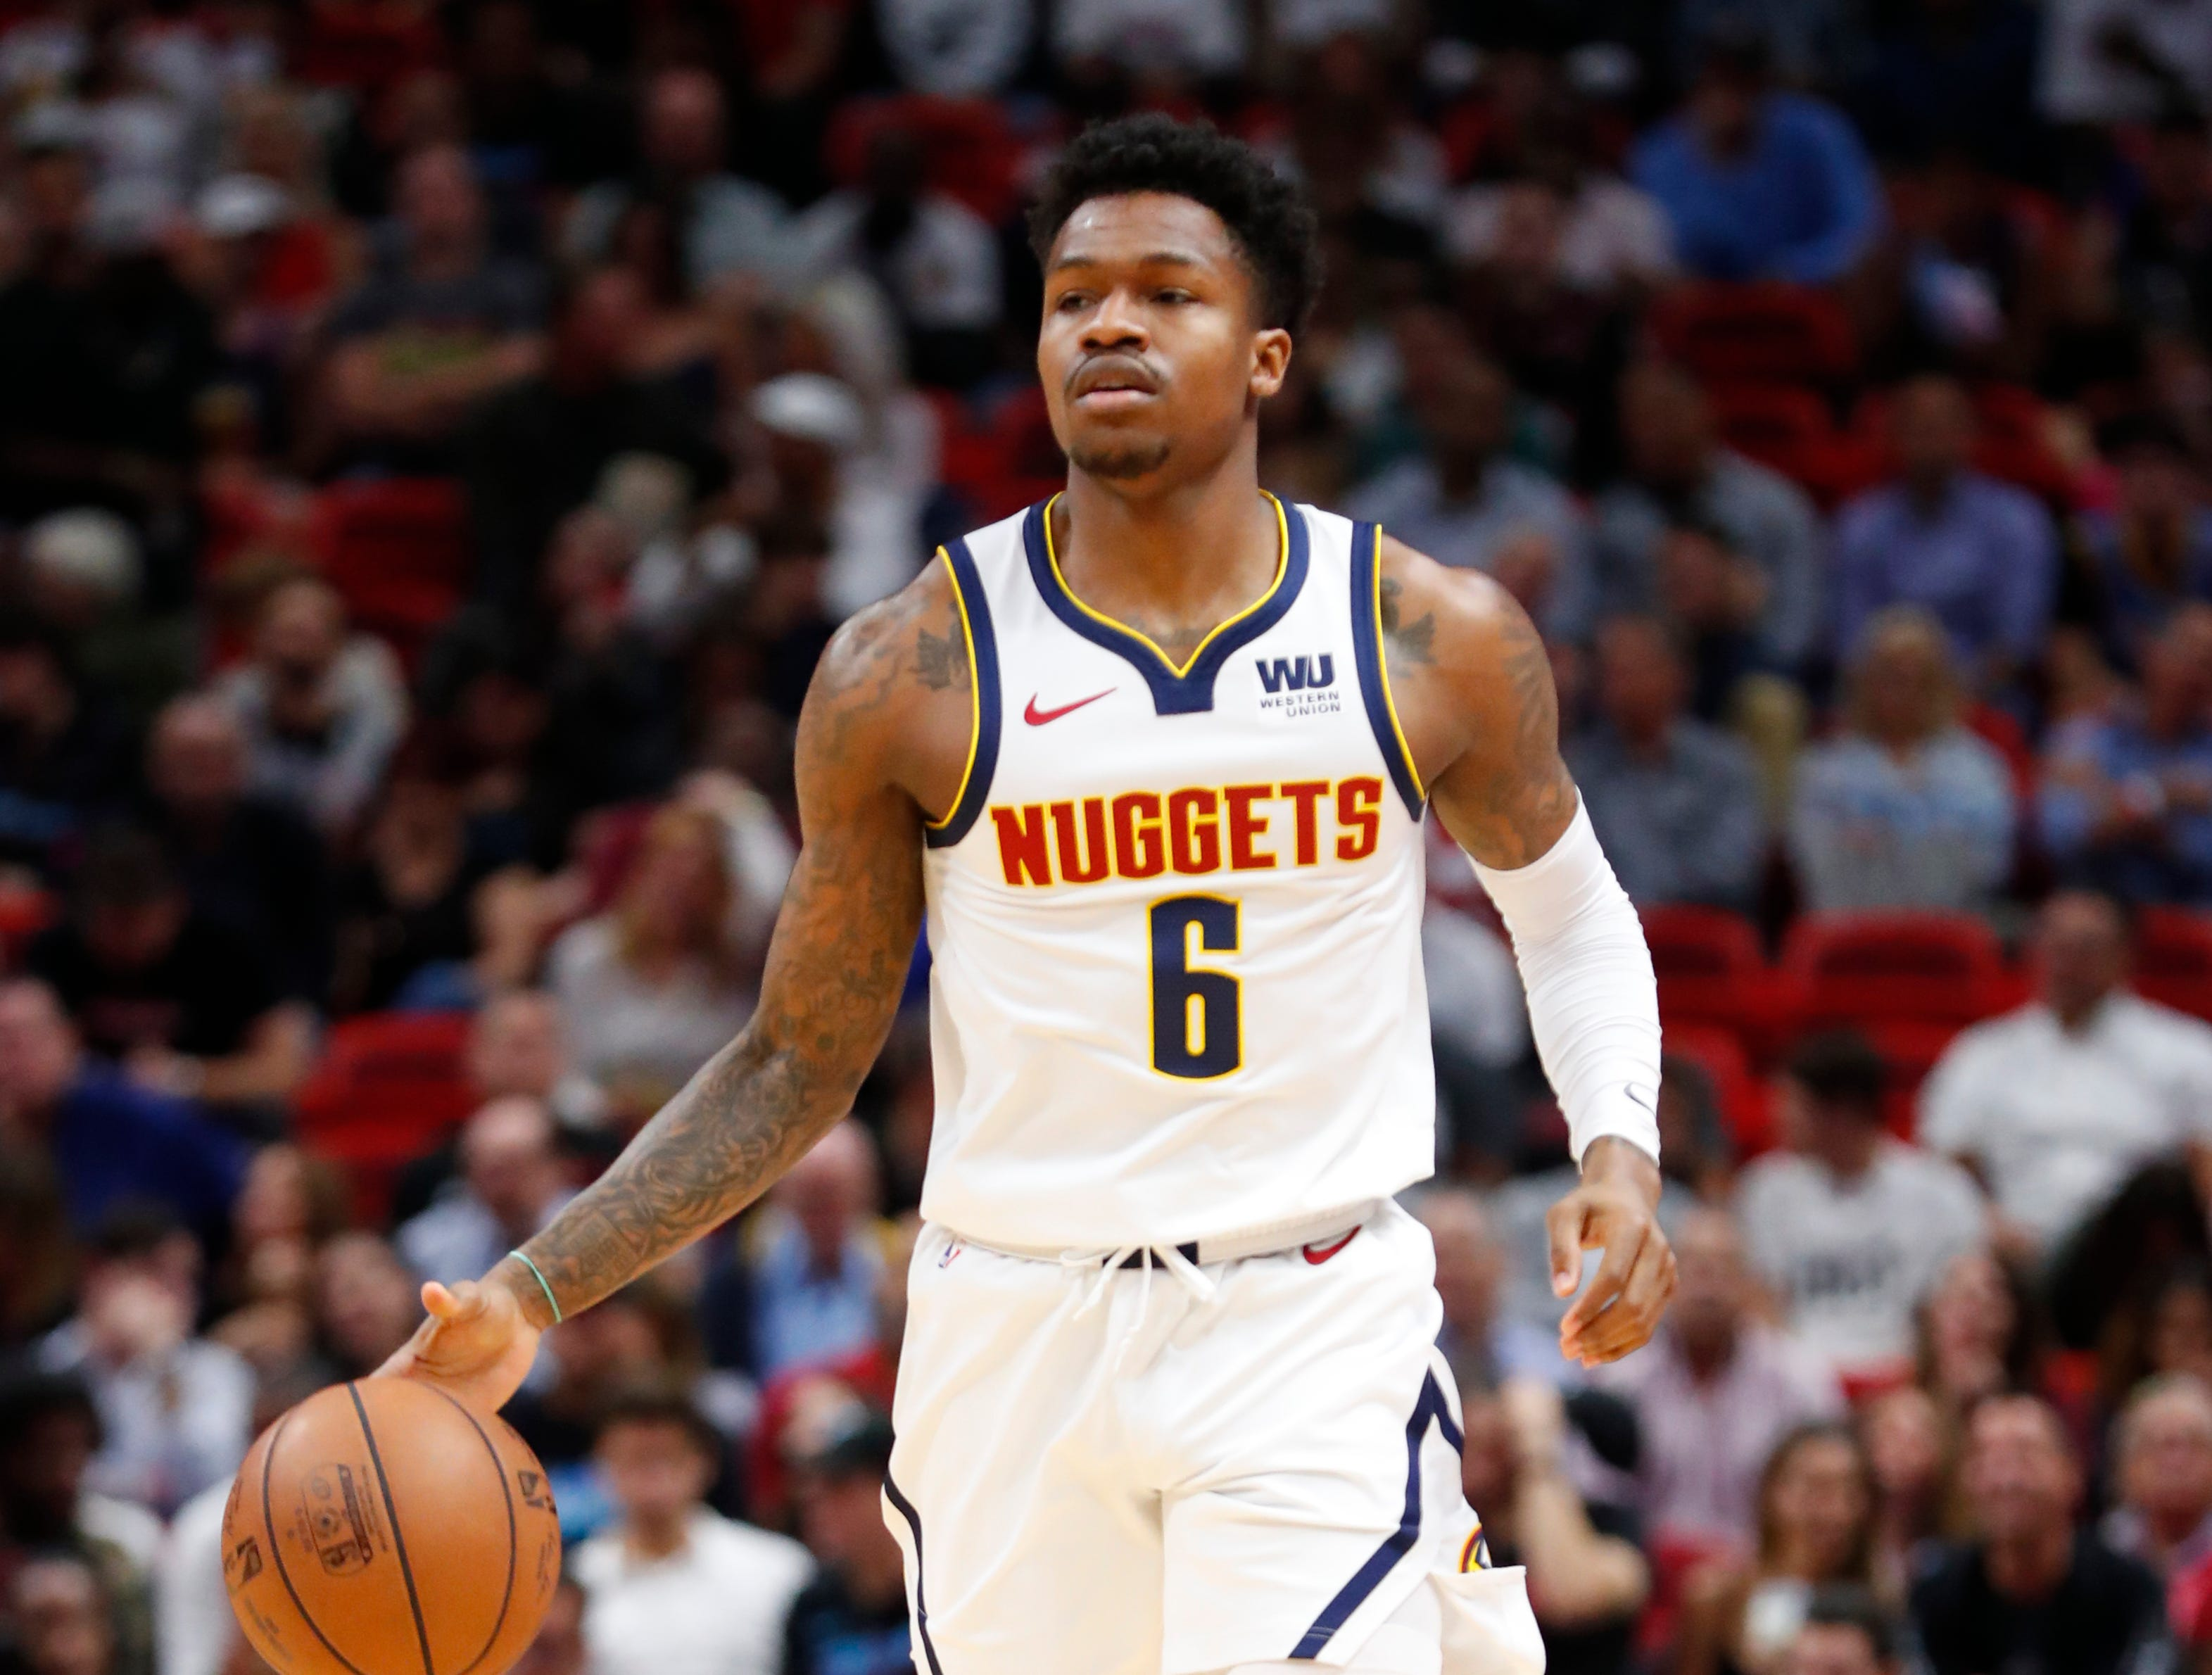 Denver Nuggets guard Brandon Goodwin takes the ball down court during the first half of an NBA basketball game against the Miami Heat, Tuesday, Jan. 8, 2019, in Miami. (AP Photo/Wilfredo Lee)